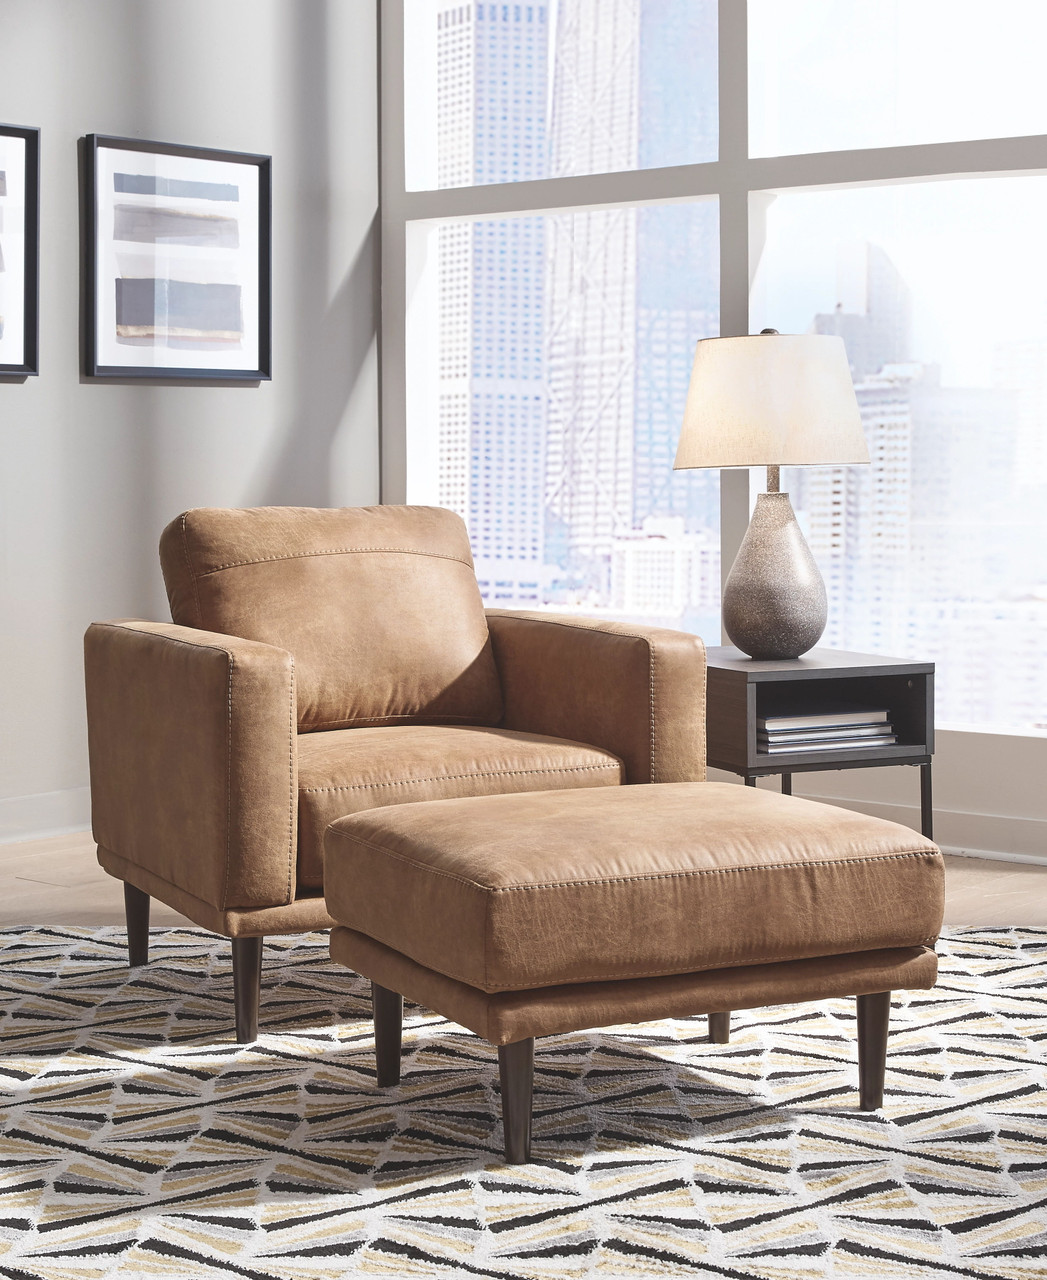 The Arroyo Caramel 2 Pc Chair With Ottoman Available At Bitney S Furniture And Mattress Company Serving Kalispell Mt